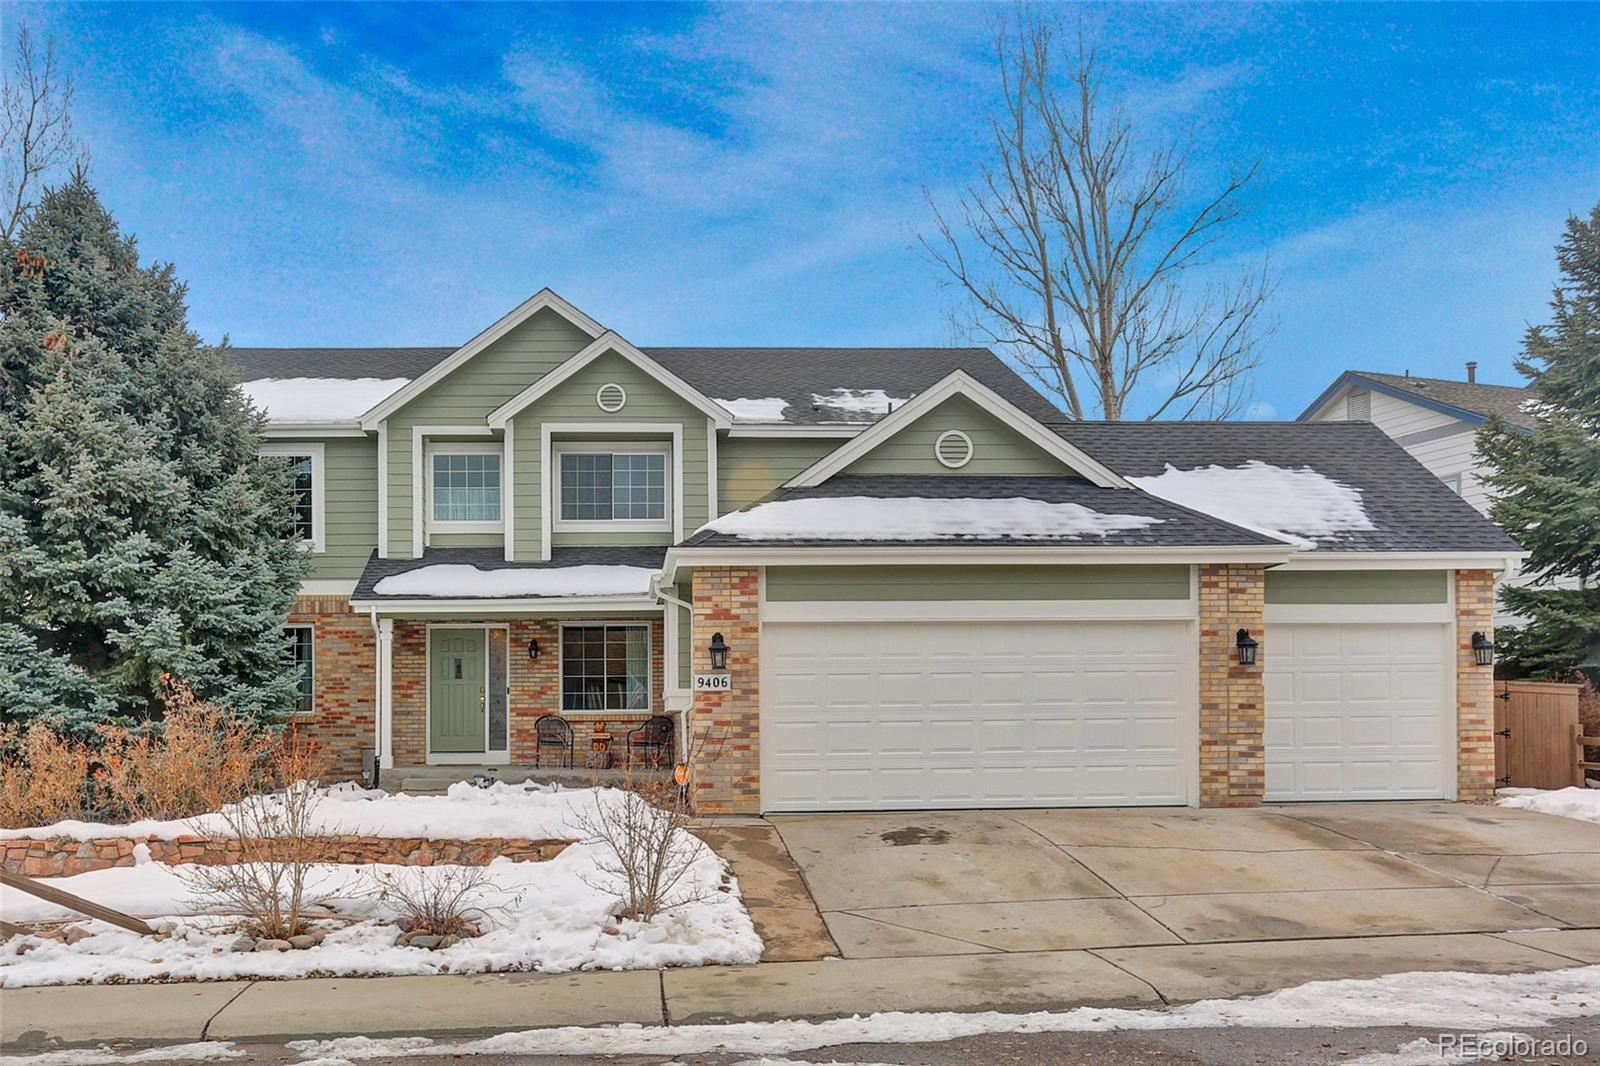 9406  Sand Hill Place, Highlands Ranch, CO 80126 - #: 8439278